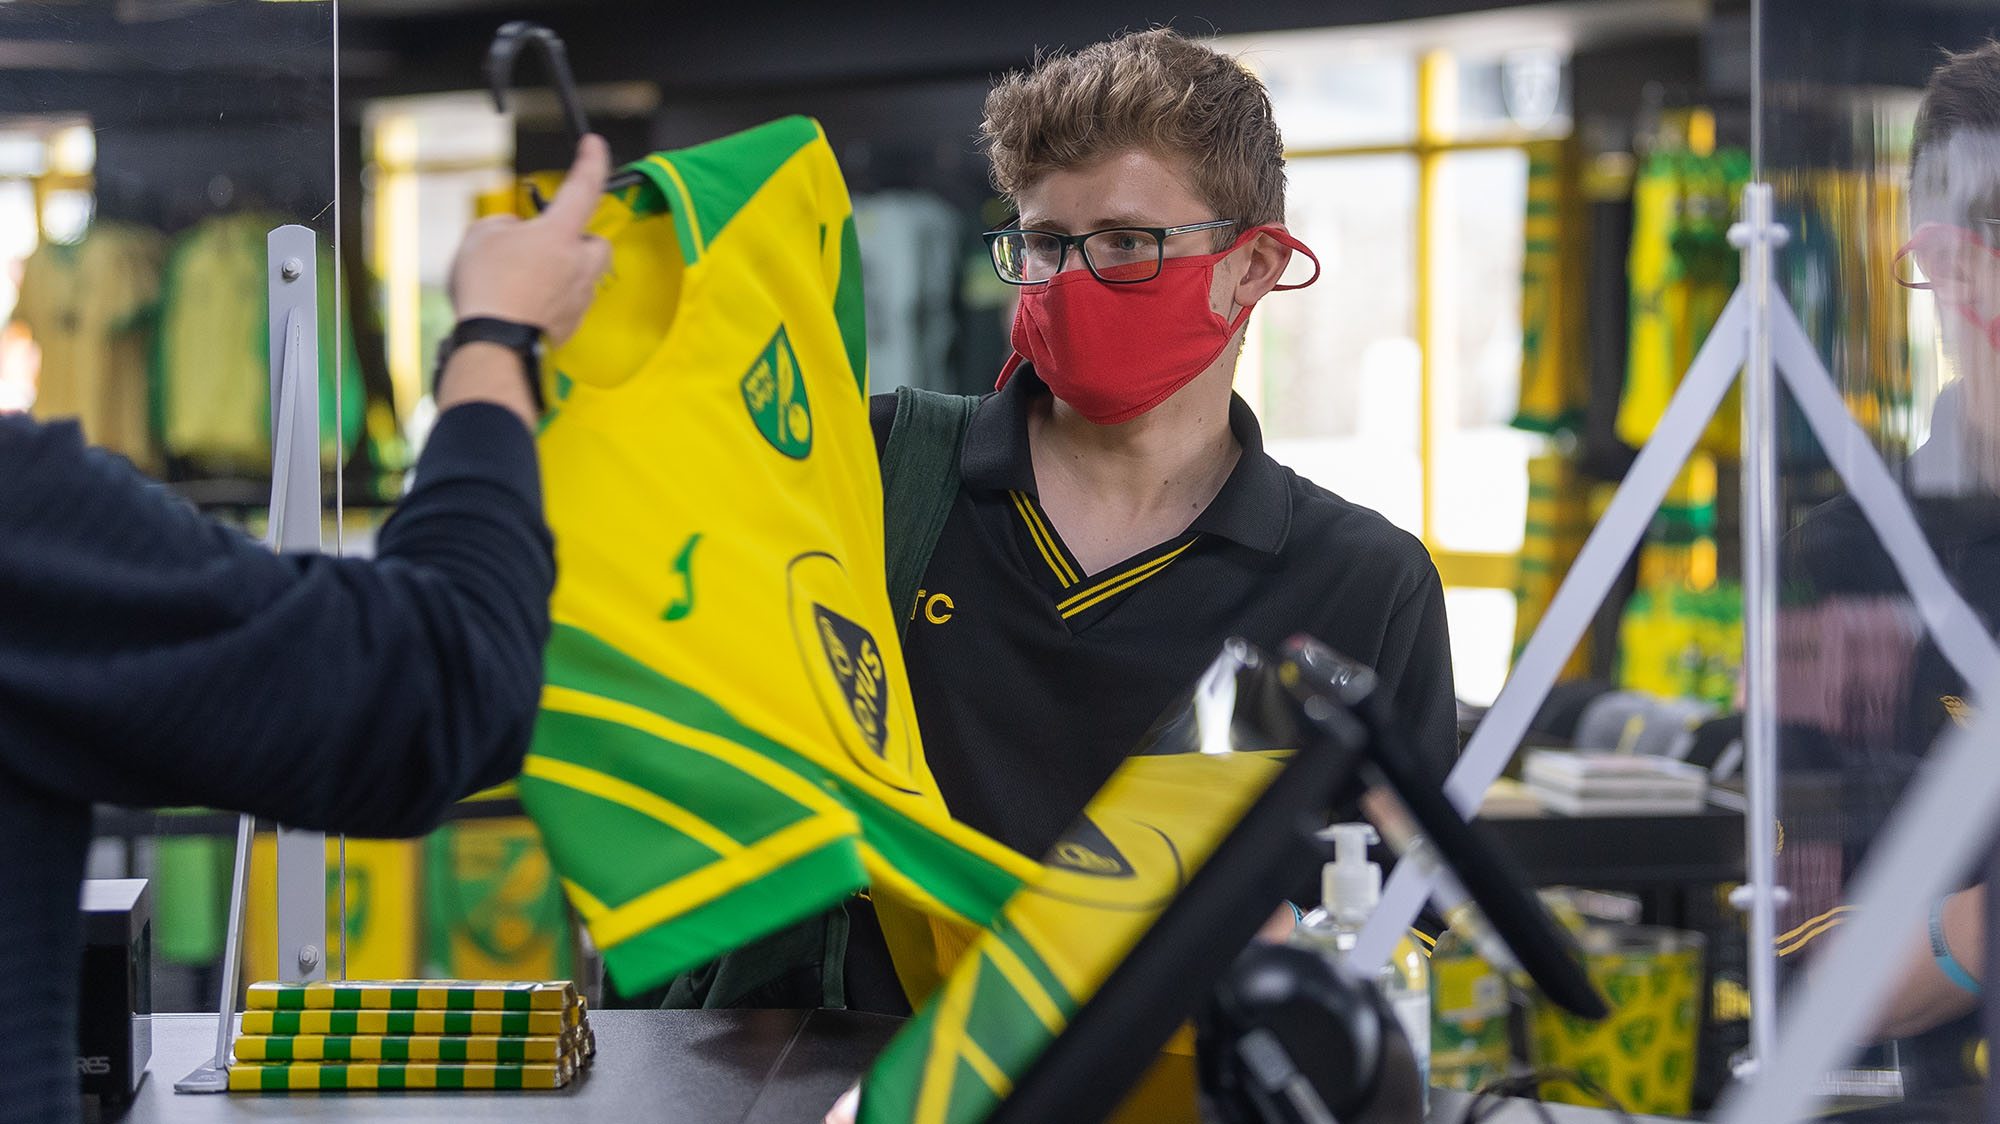 carrow-road-re-opens-with-fans-flocking-to-purchase-new-home-kit